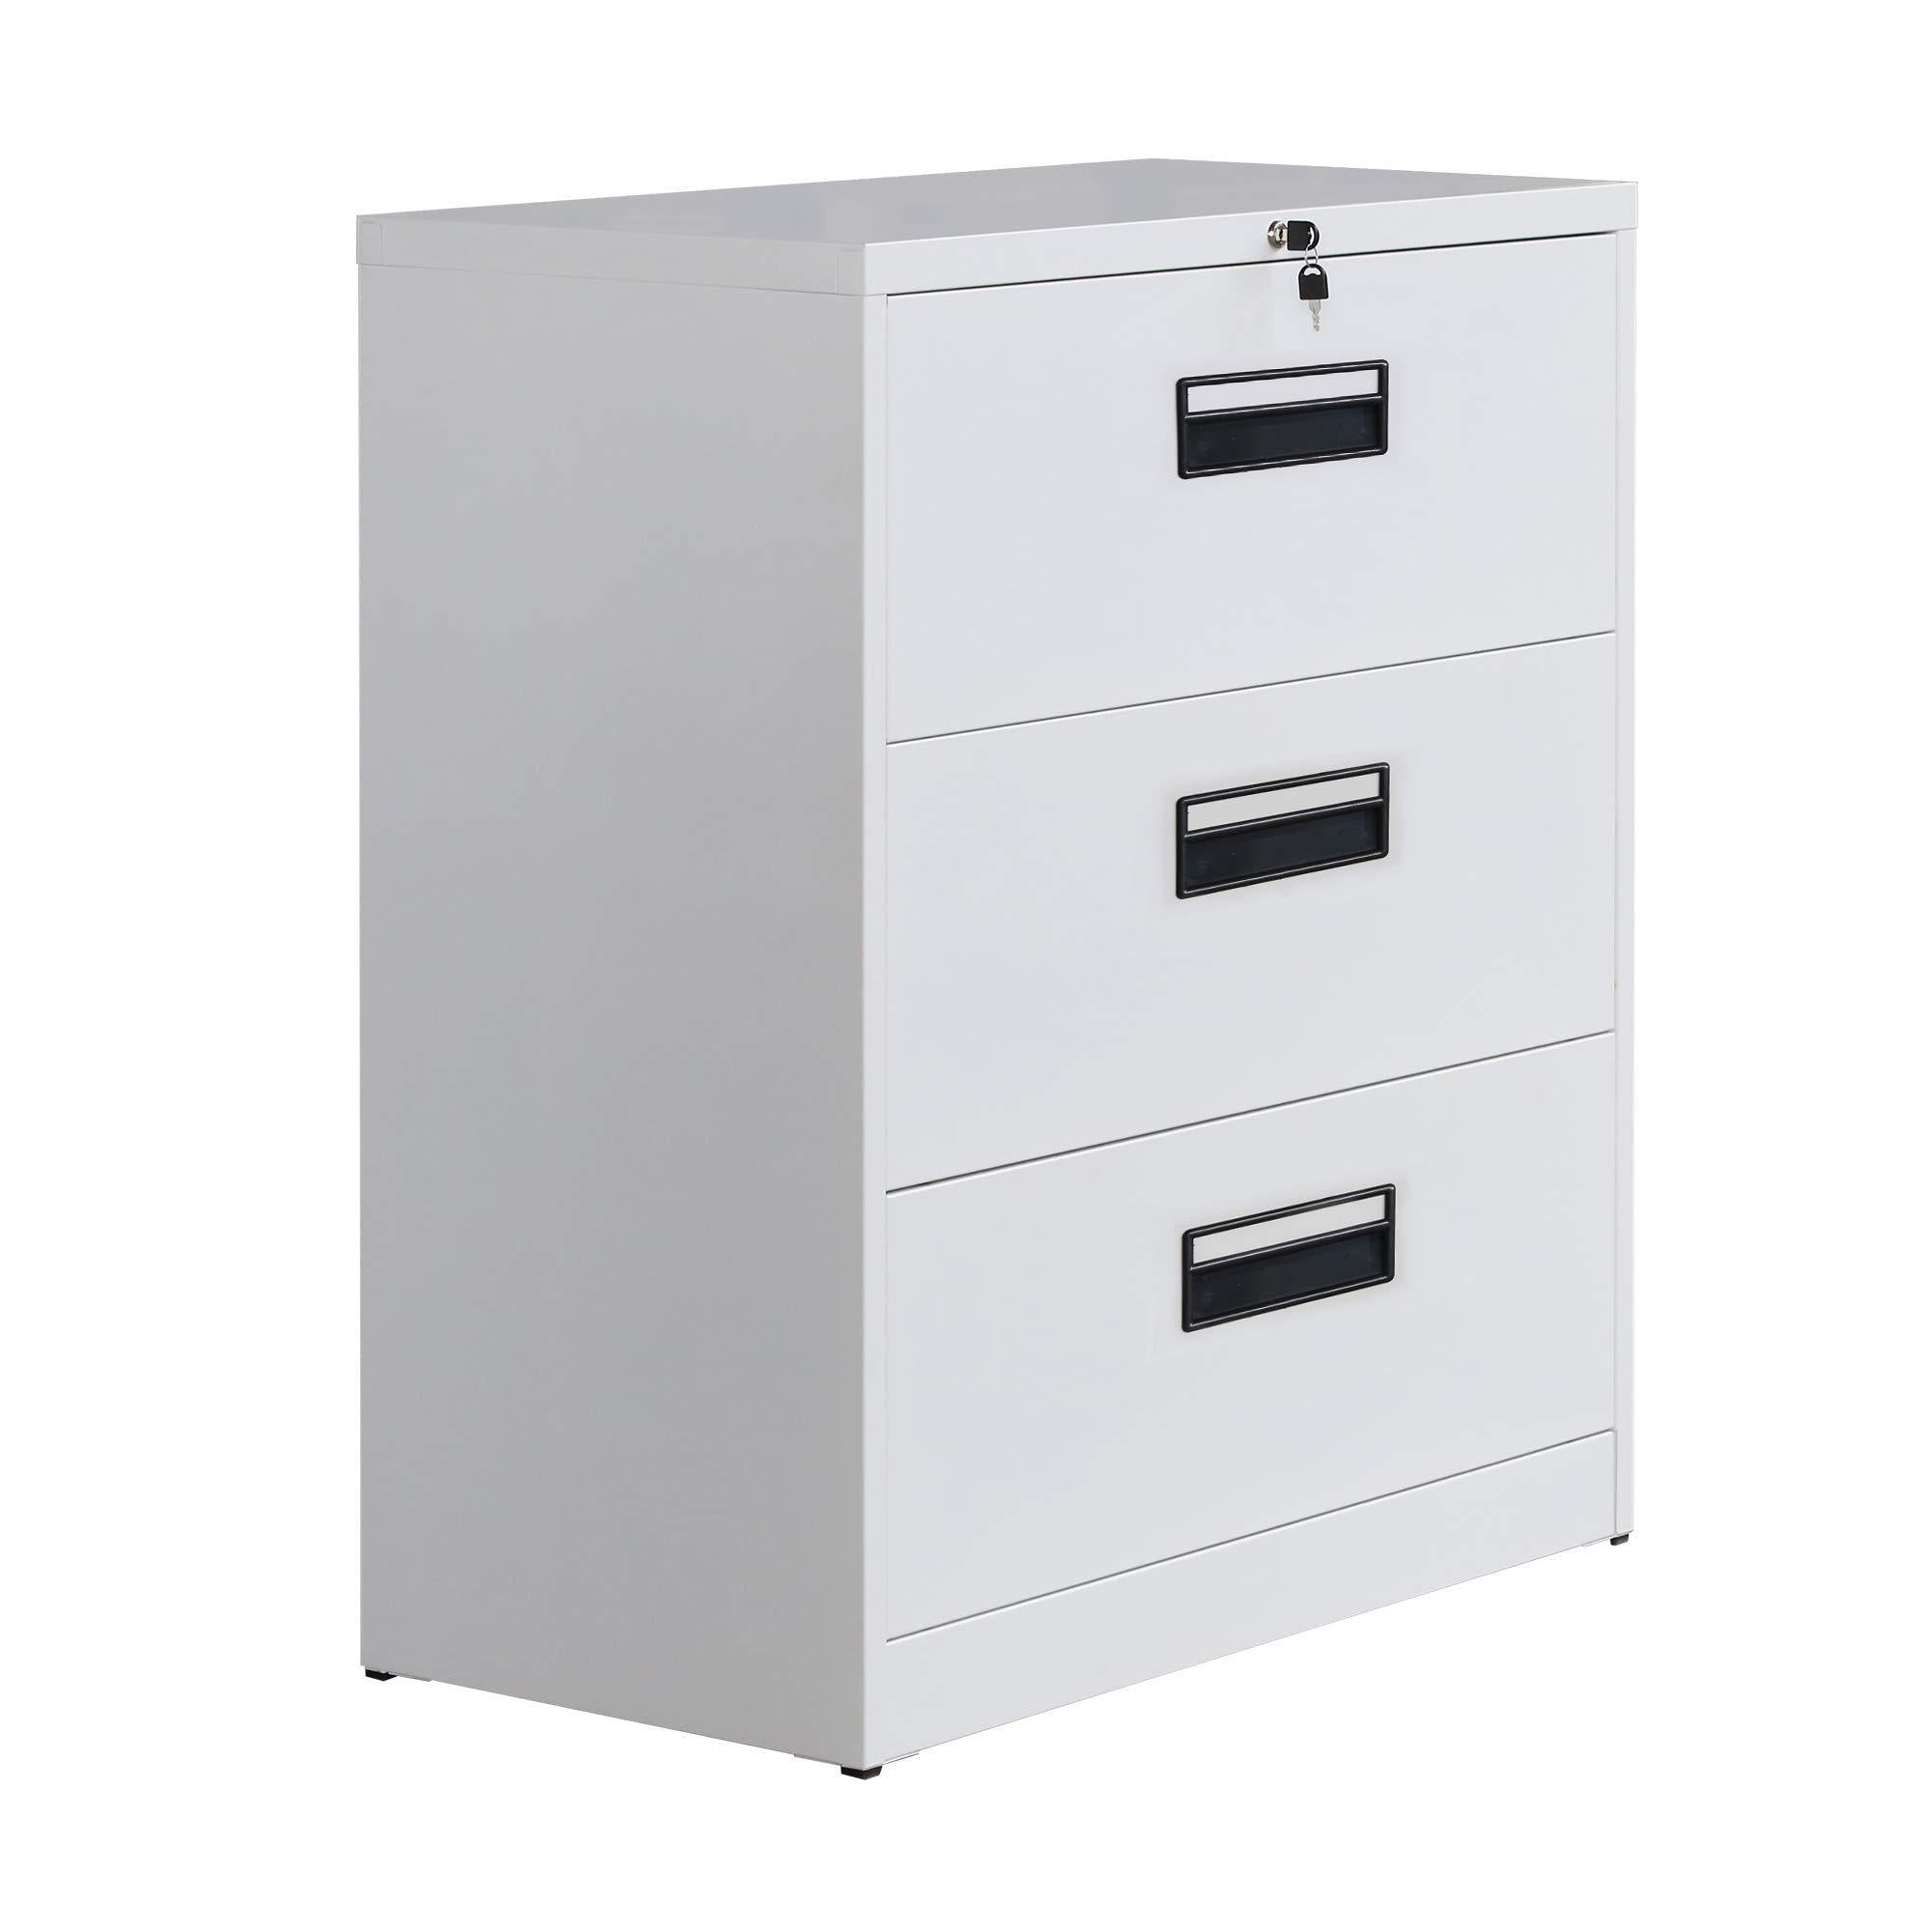 Amazon merax lateral file cabinet 2 drawer locking filing cabinet 3 drawers metal organizer with heavy duty hanging file frame for legal business files office home storage